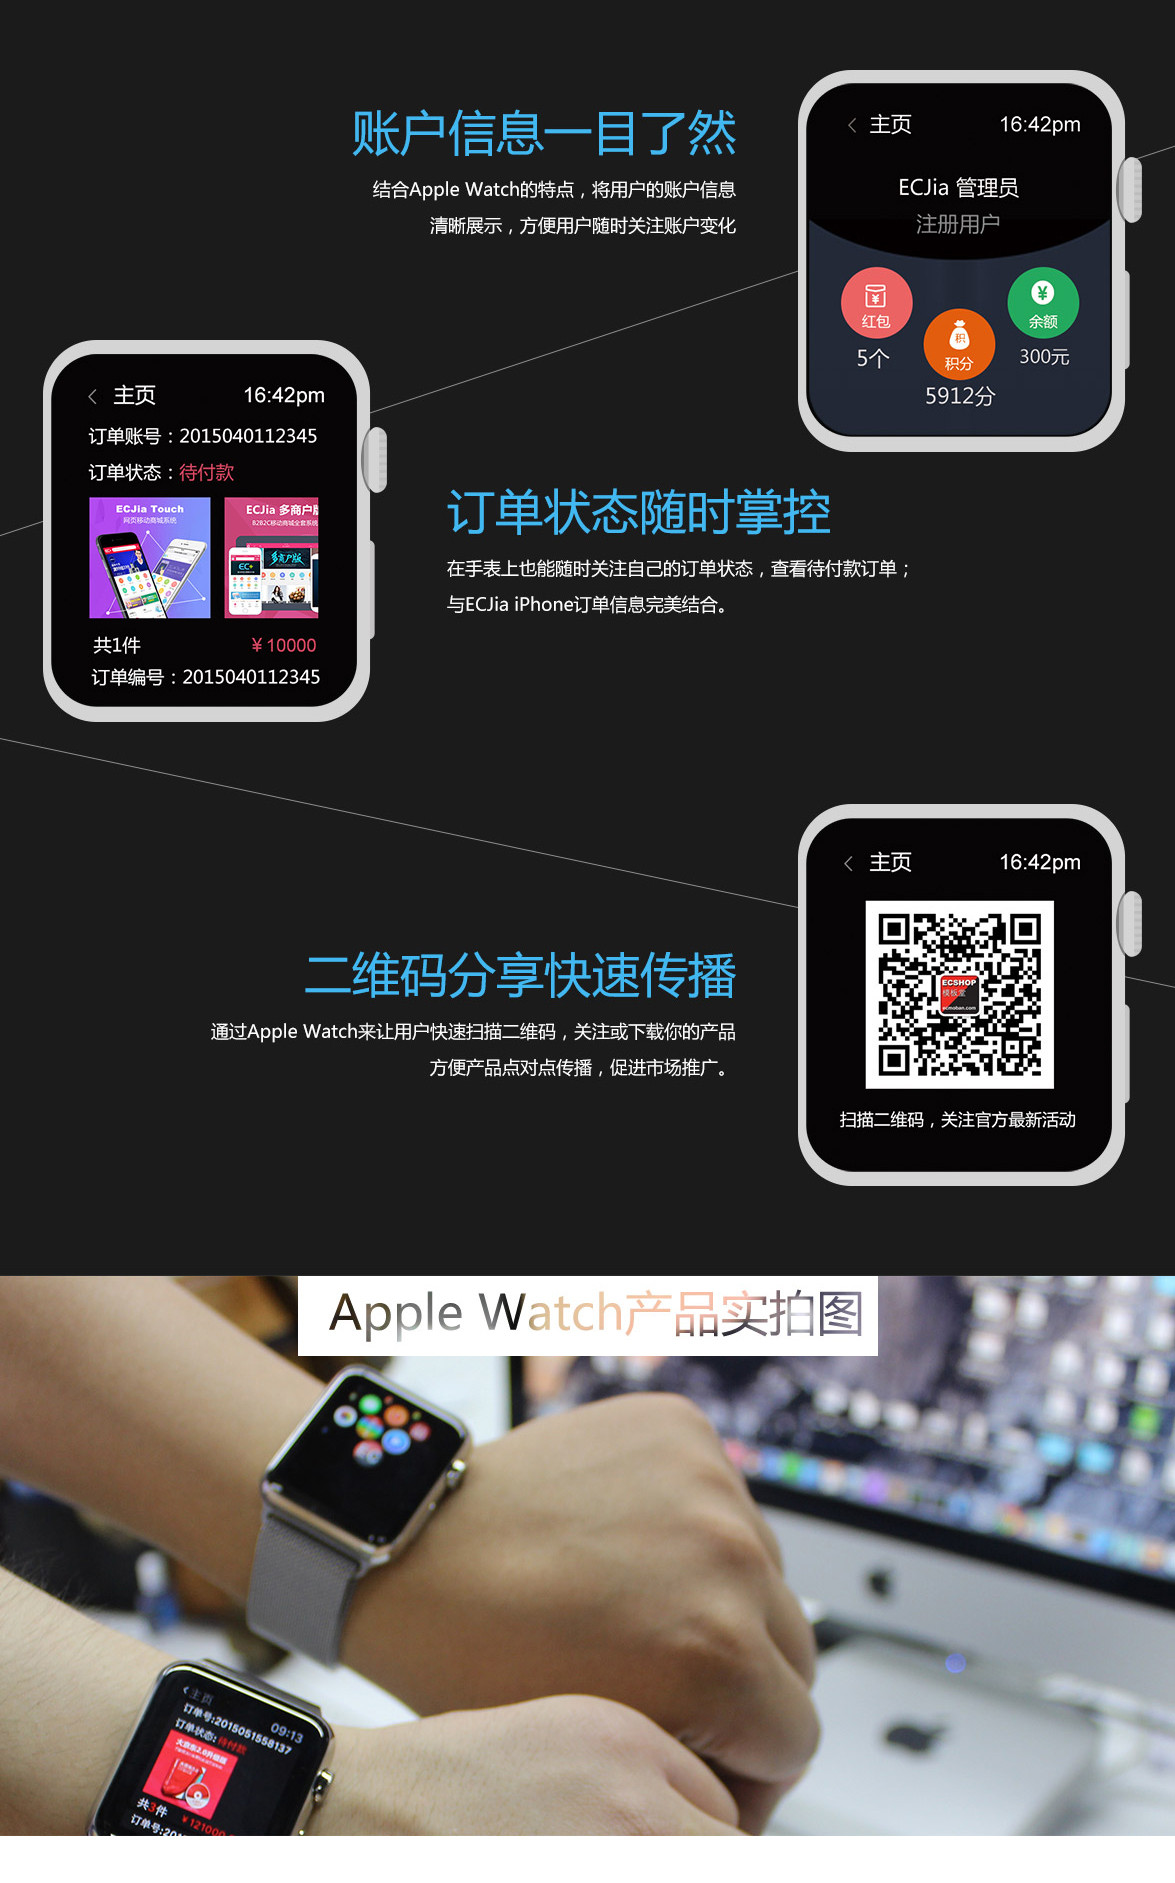 ECJia-AppleWatch-专题页截图3.jpg